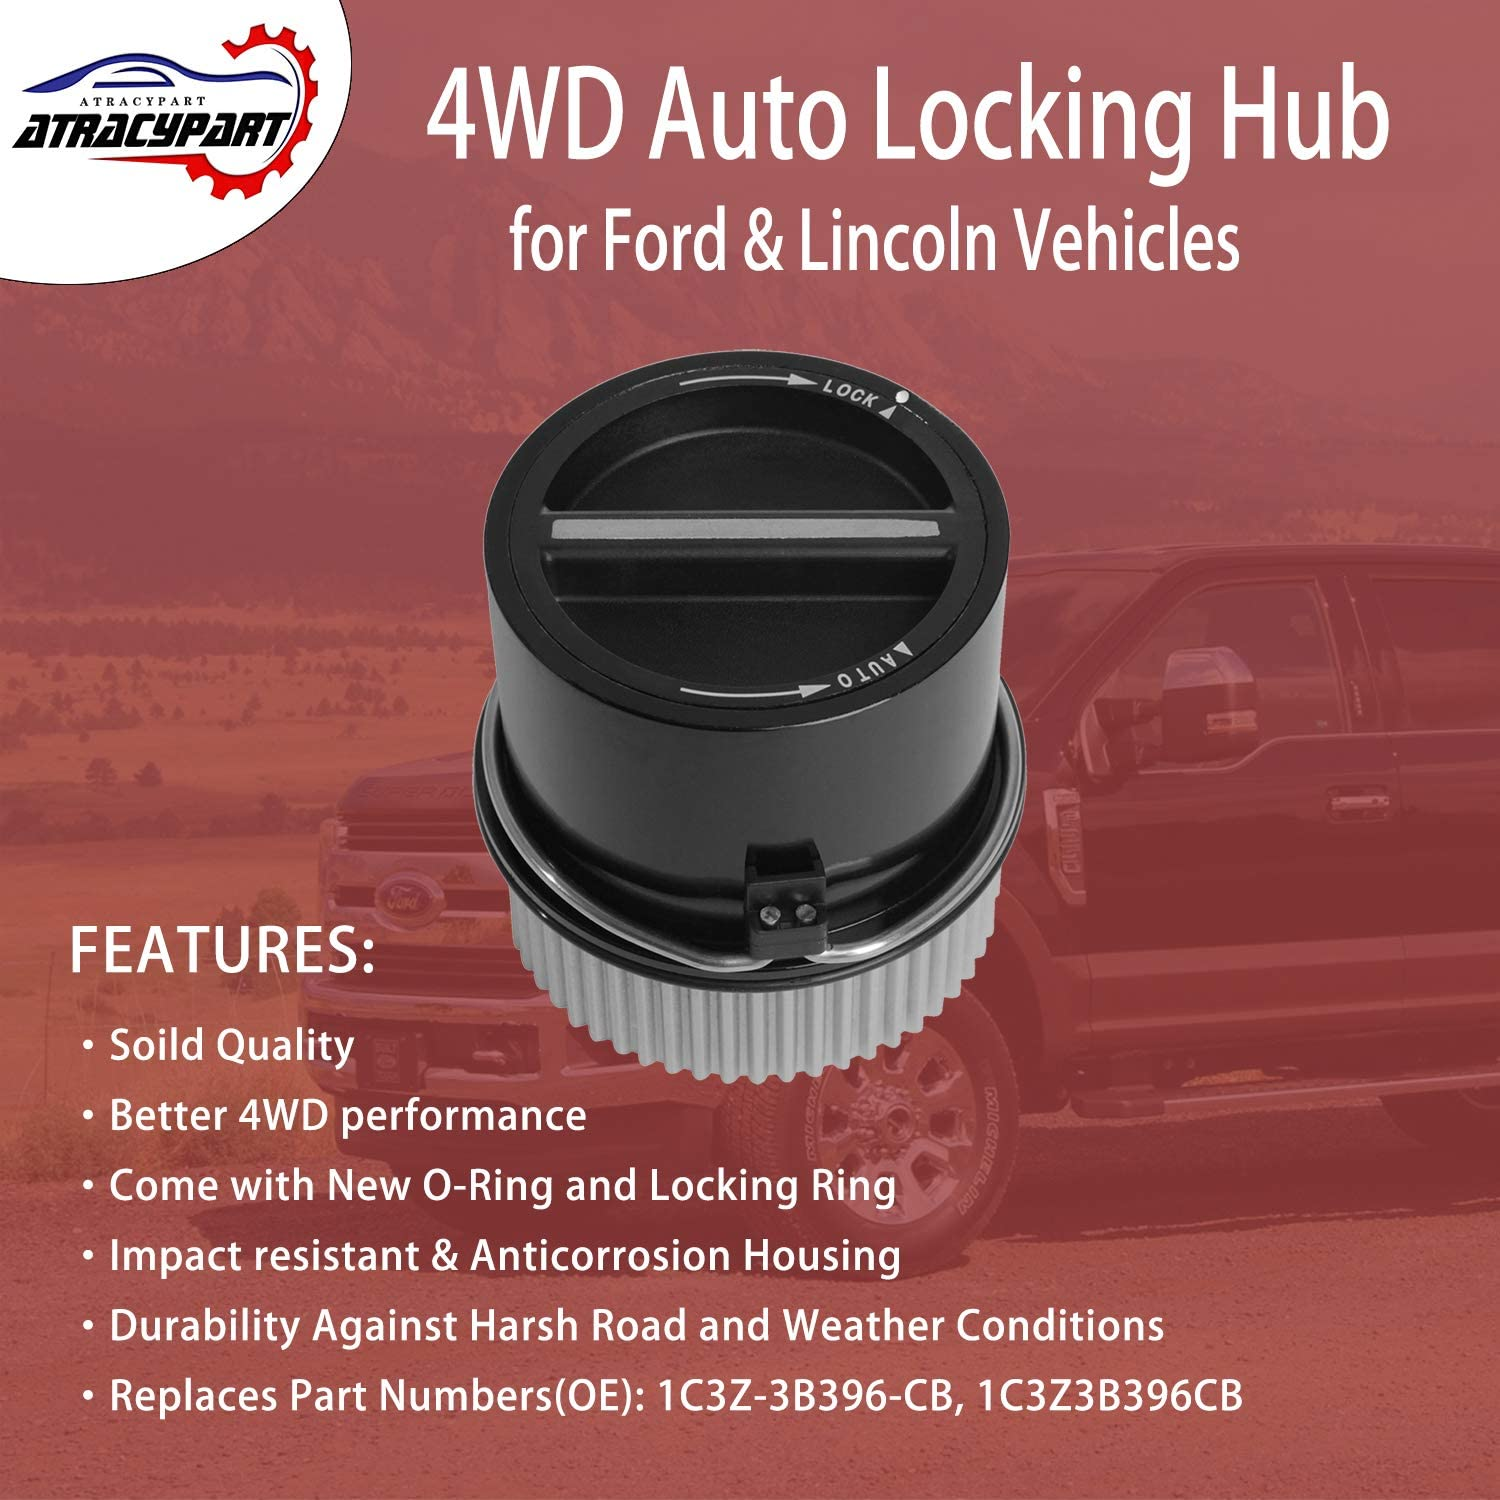 #1C3Z3B396CB 4WD Auto Locking Hub Link Front Left or Right for 1999-2004 Ford F250 F350 F450 F550 Super Duty 2001-2002 Expedition /& Lincoln Navigator 2000-2005 Excursion 1C3Z-3B396-CB